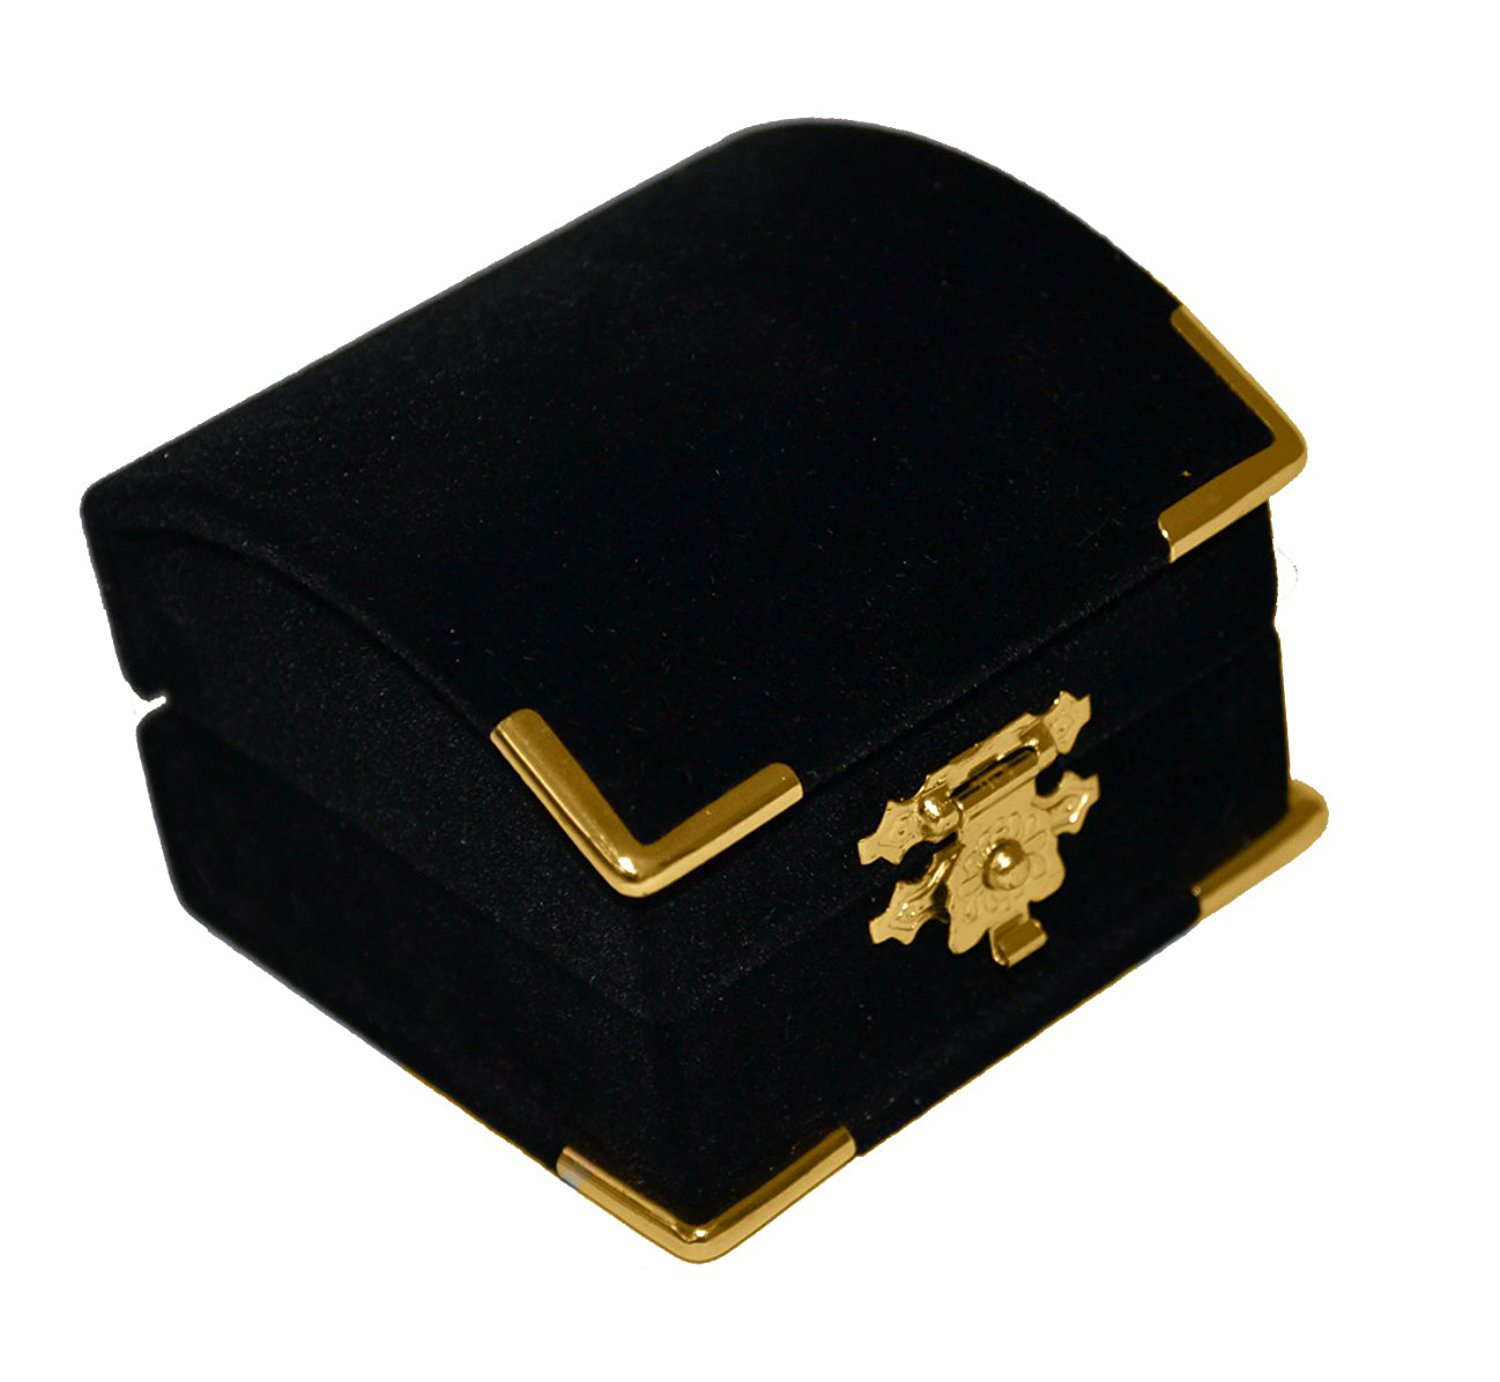 Elegant Black Gold Hinge Earring Box